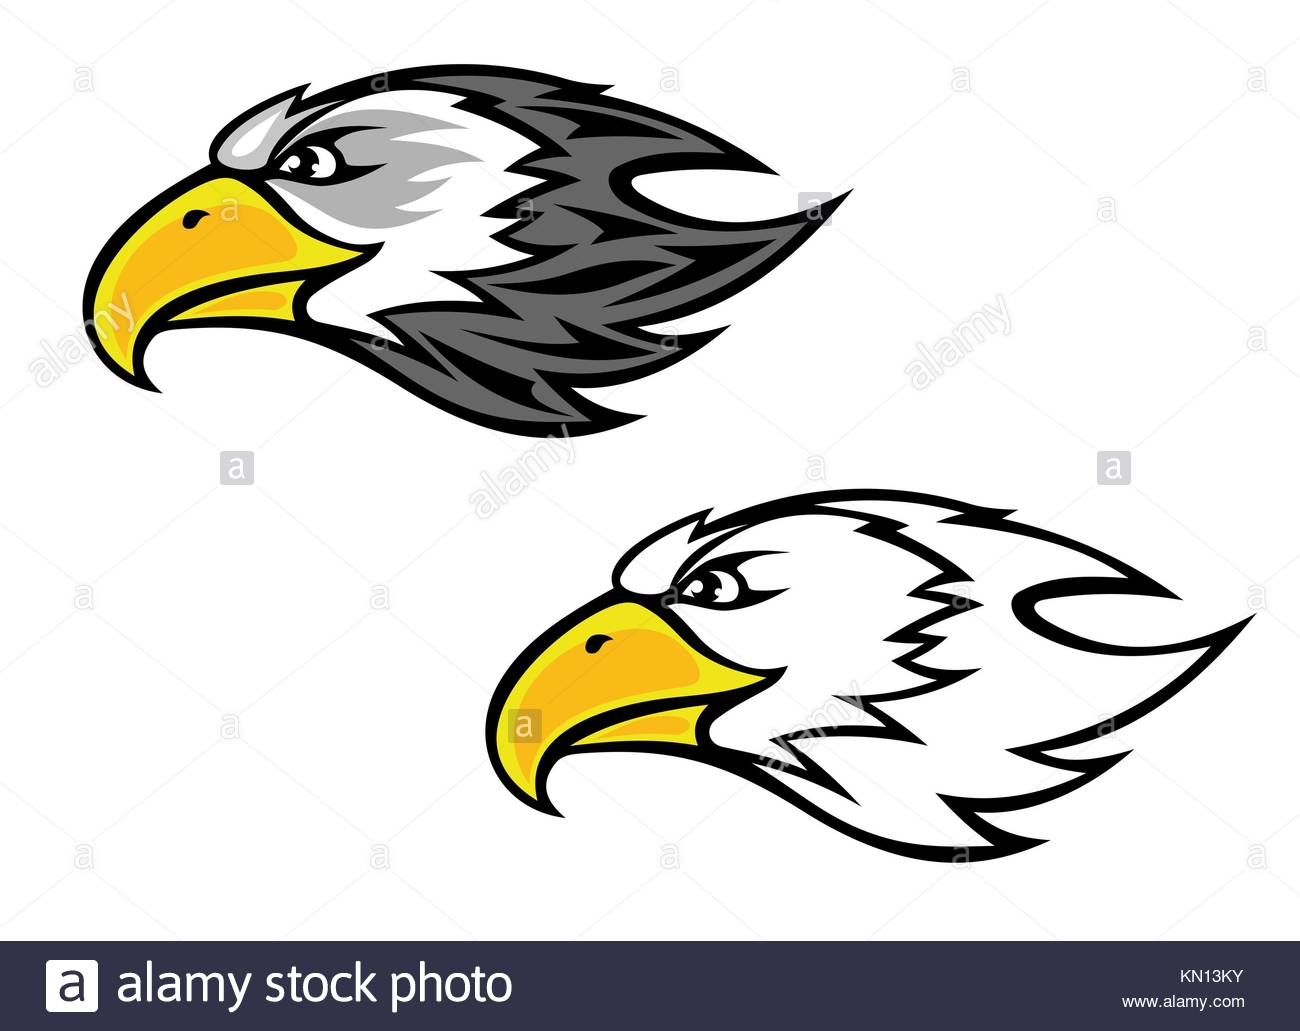 cartoon hawk stock photos cartoon hawk stock images alamy. Black Bedroom Furniture Sets. Home Design Ideas